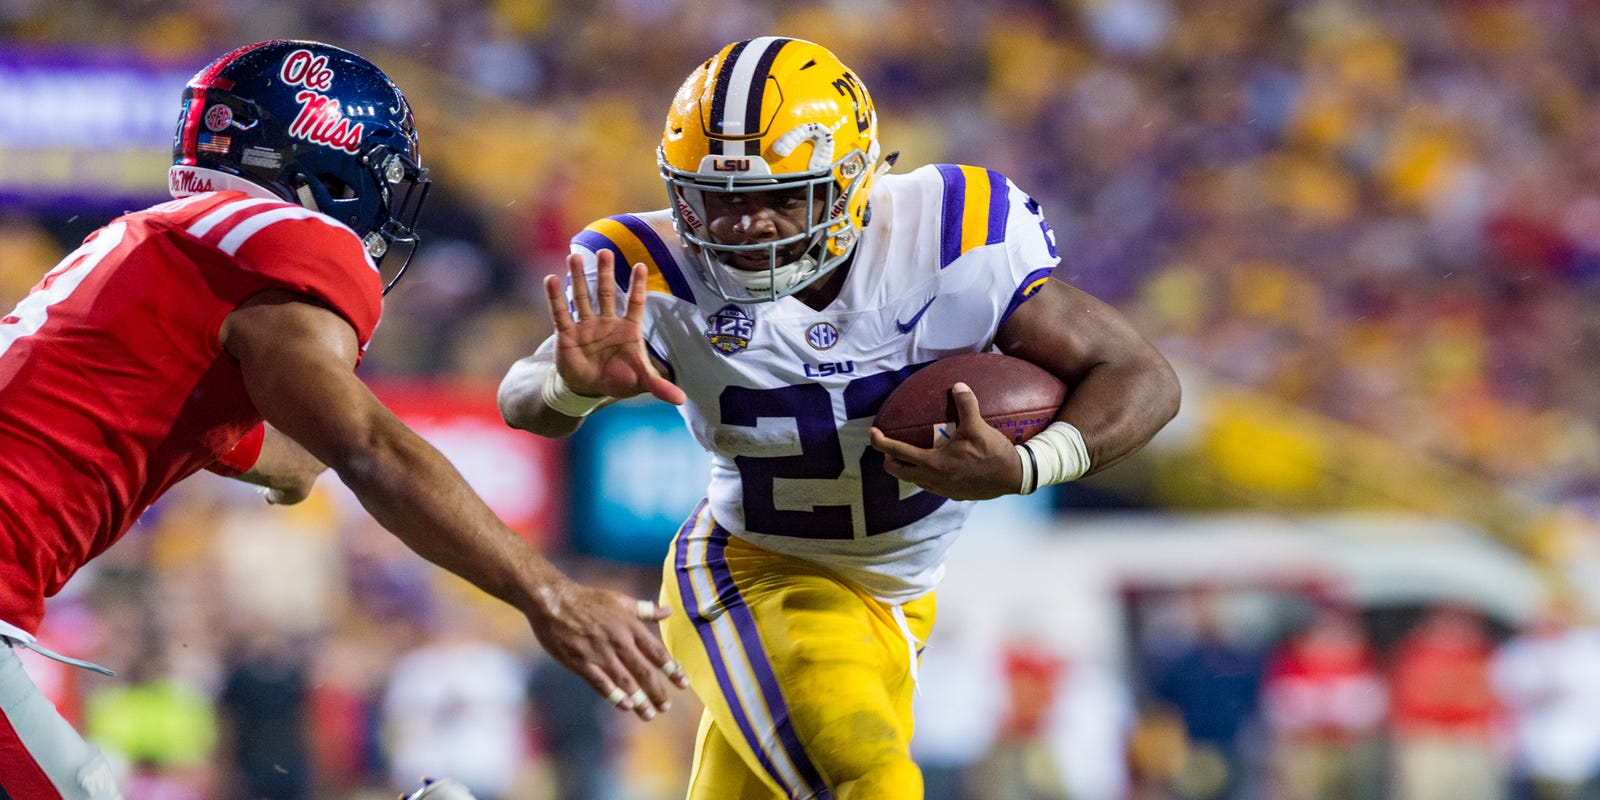 Police: LSU player fatally shot man who was attempting armed robbery